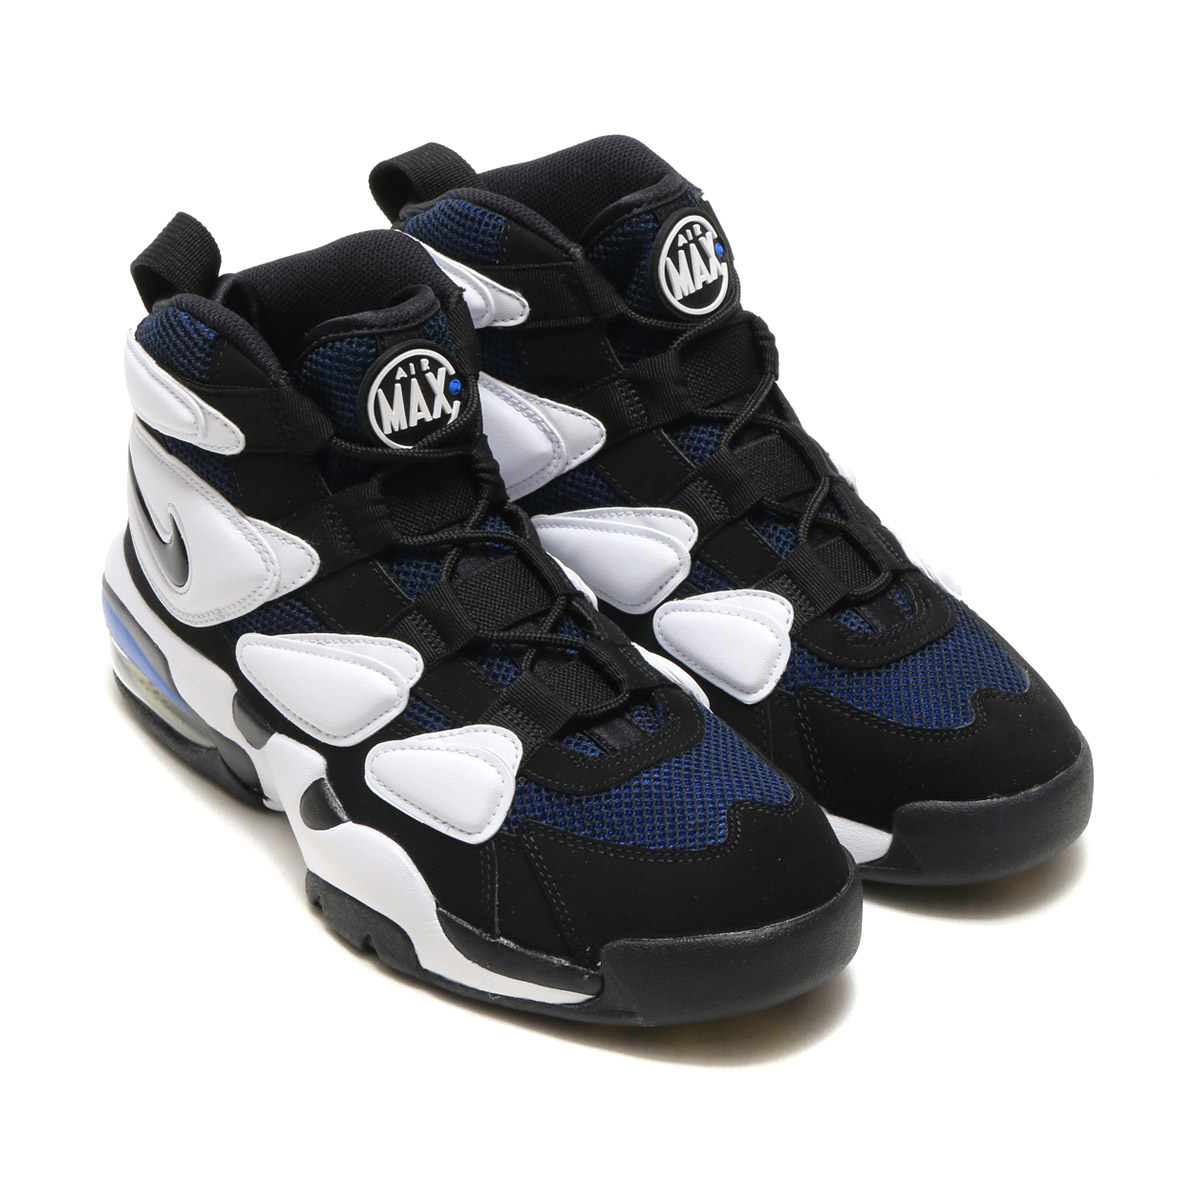 cheap for discount 2444c 5109b The Air Max 2 up tempo which sweeps over a street now that 20 years or more  passed from the debut with the coat. In powerful curve and クッショニング of ...